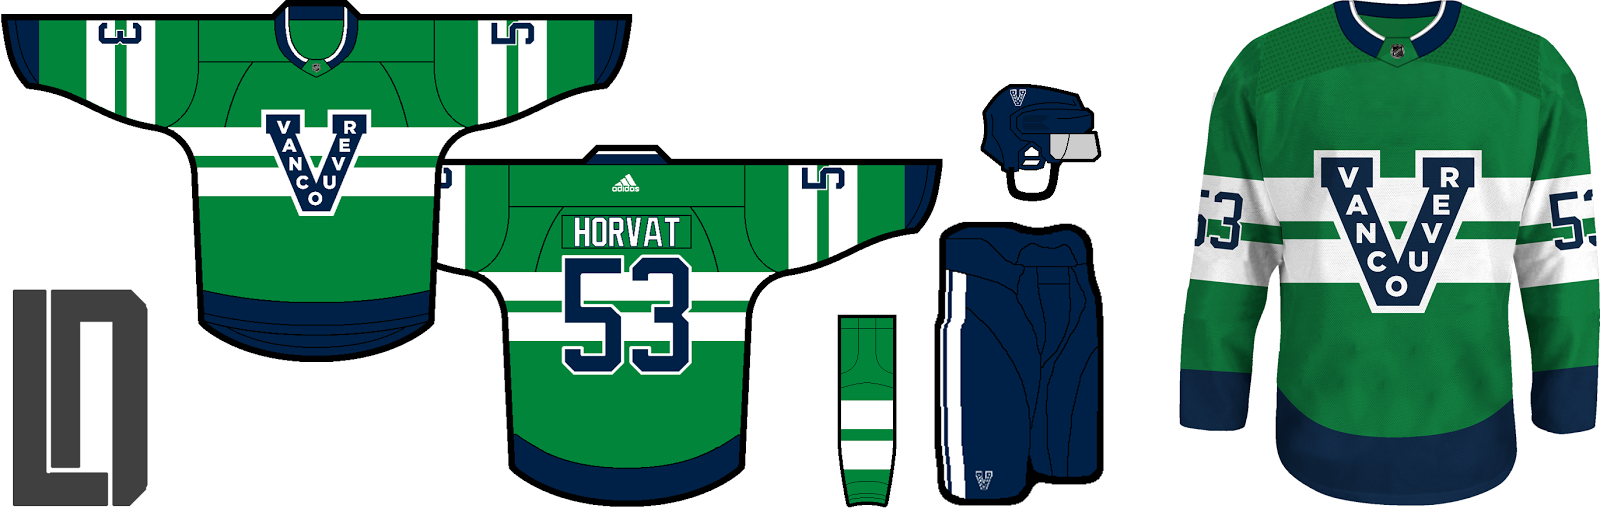 Vancouver+Canucks+Concept.png